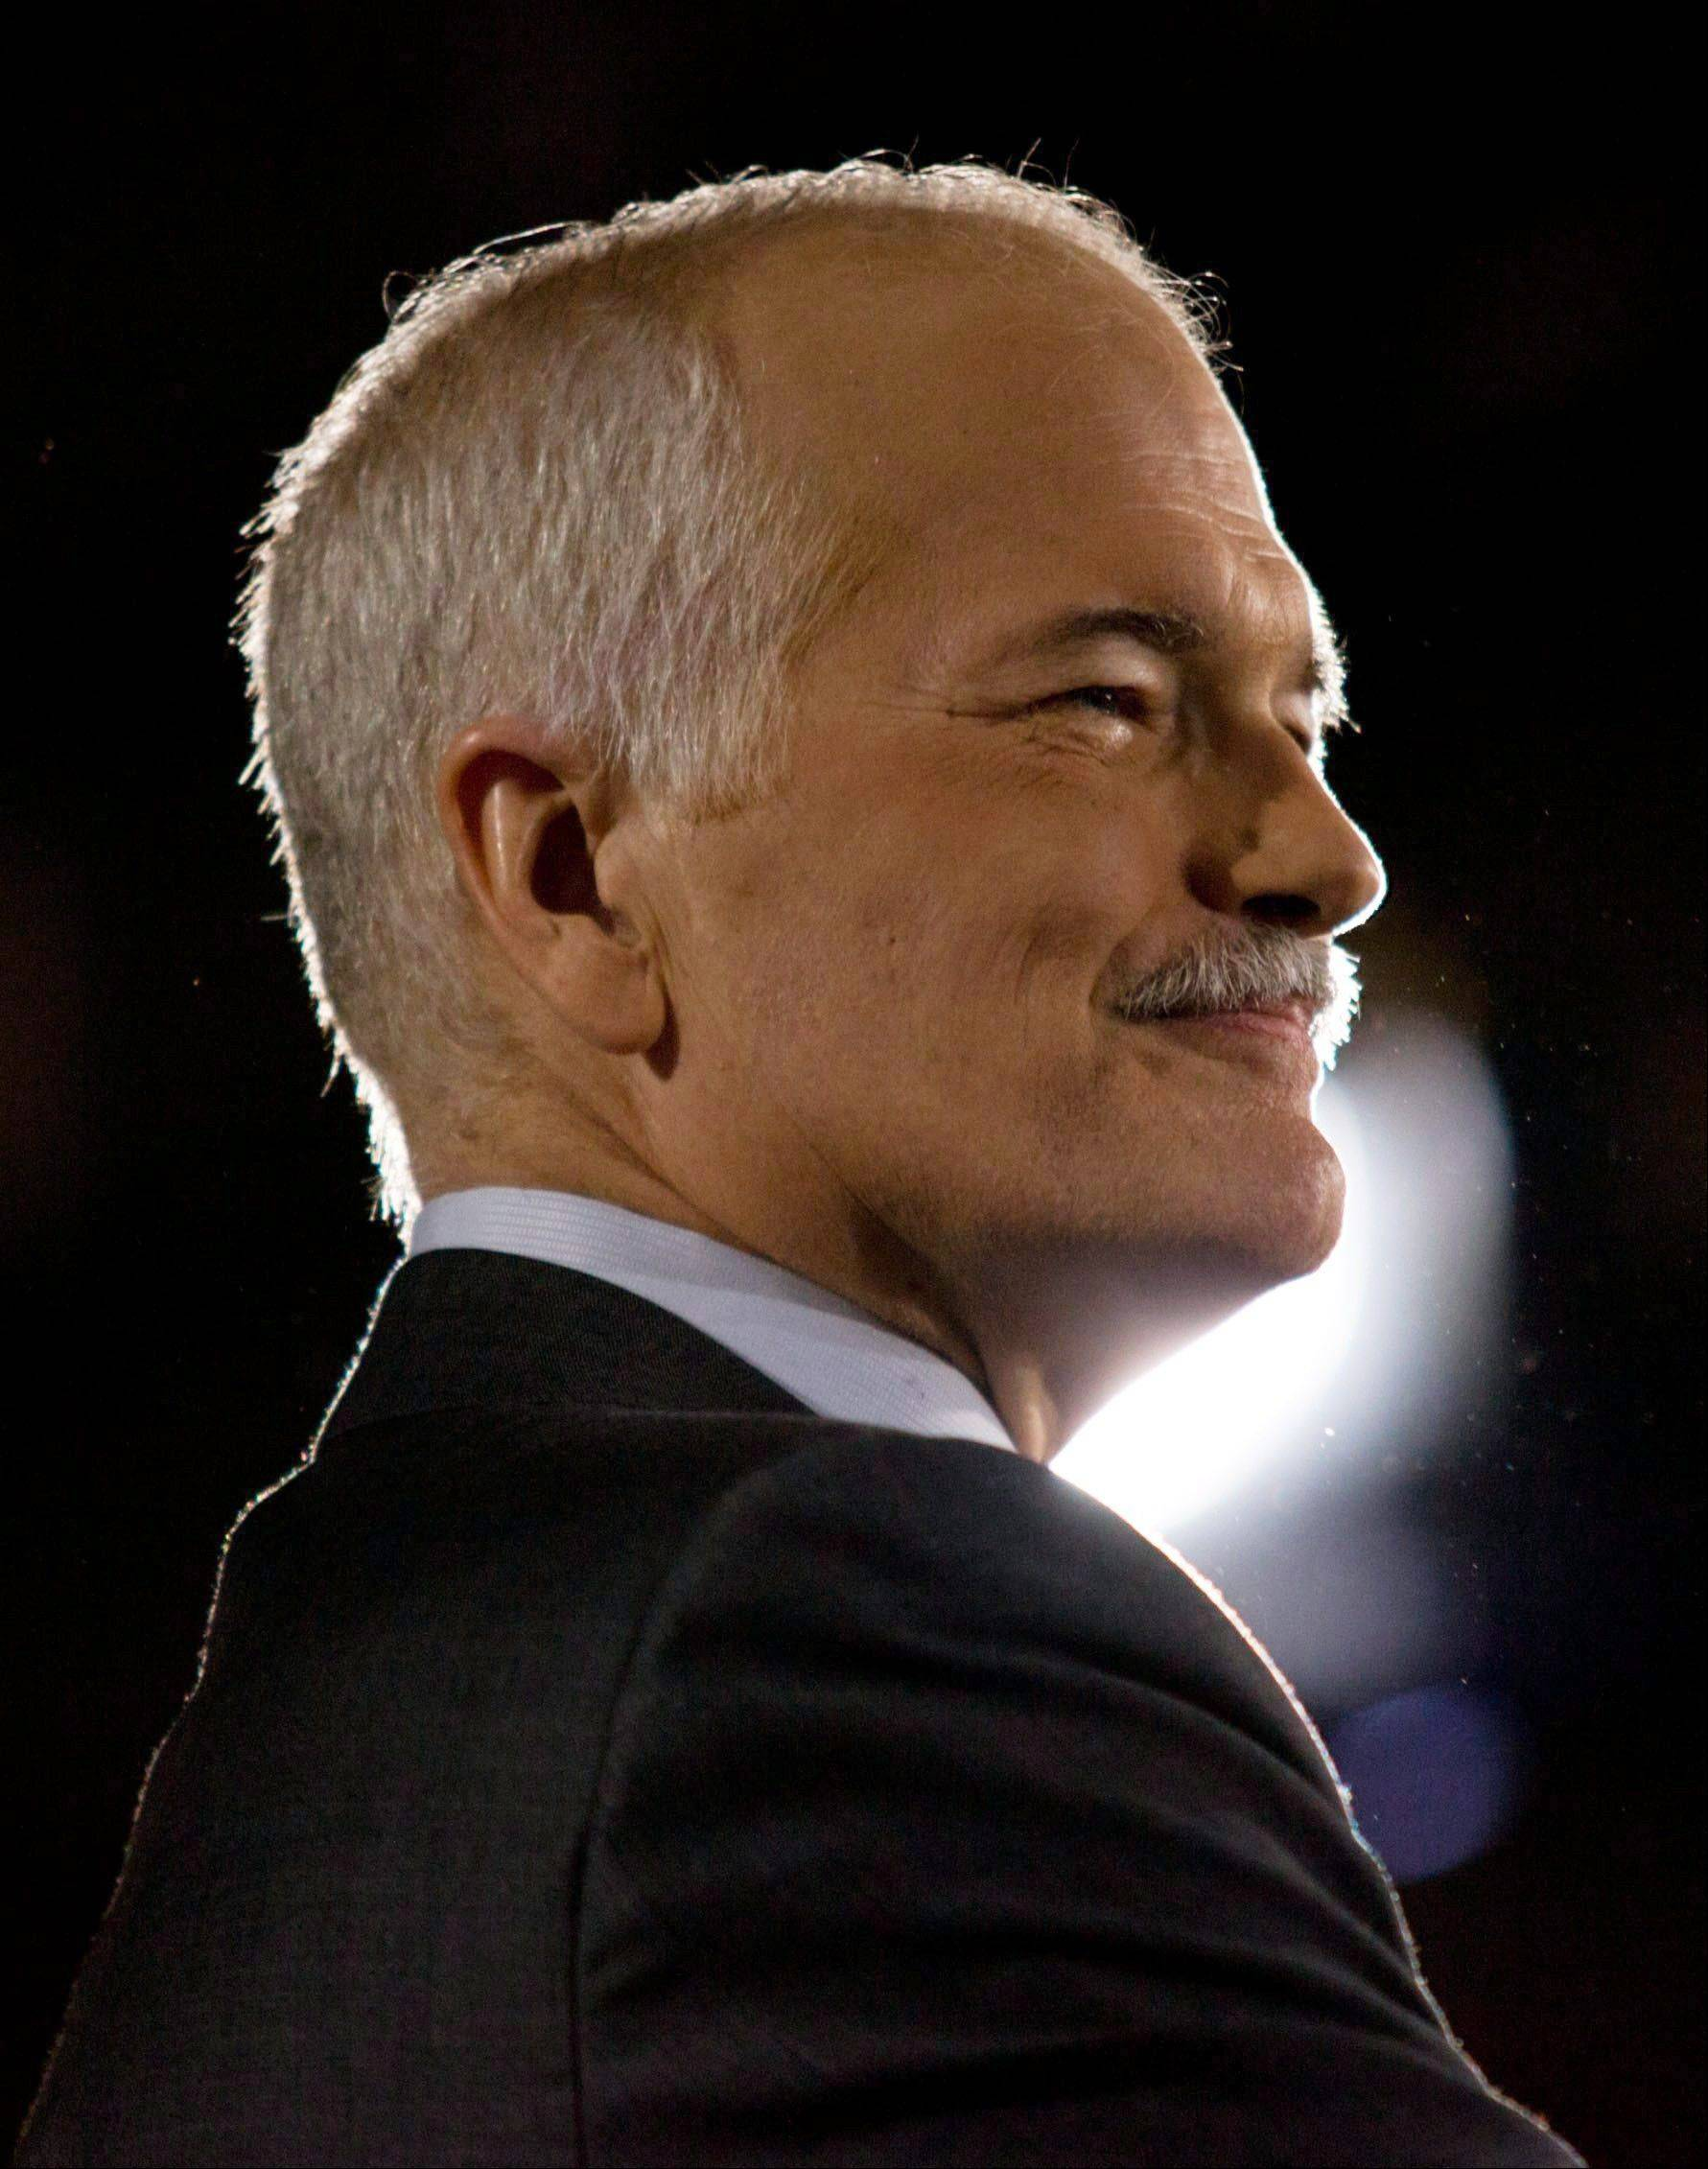 In this May 2, 2011 photo, NDP Leader Jack Layton speaks to supporters at the NDP headquarters in Toronto. Layton died Monday, Aug. 22, 2011, after a battle with cancer.